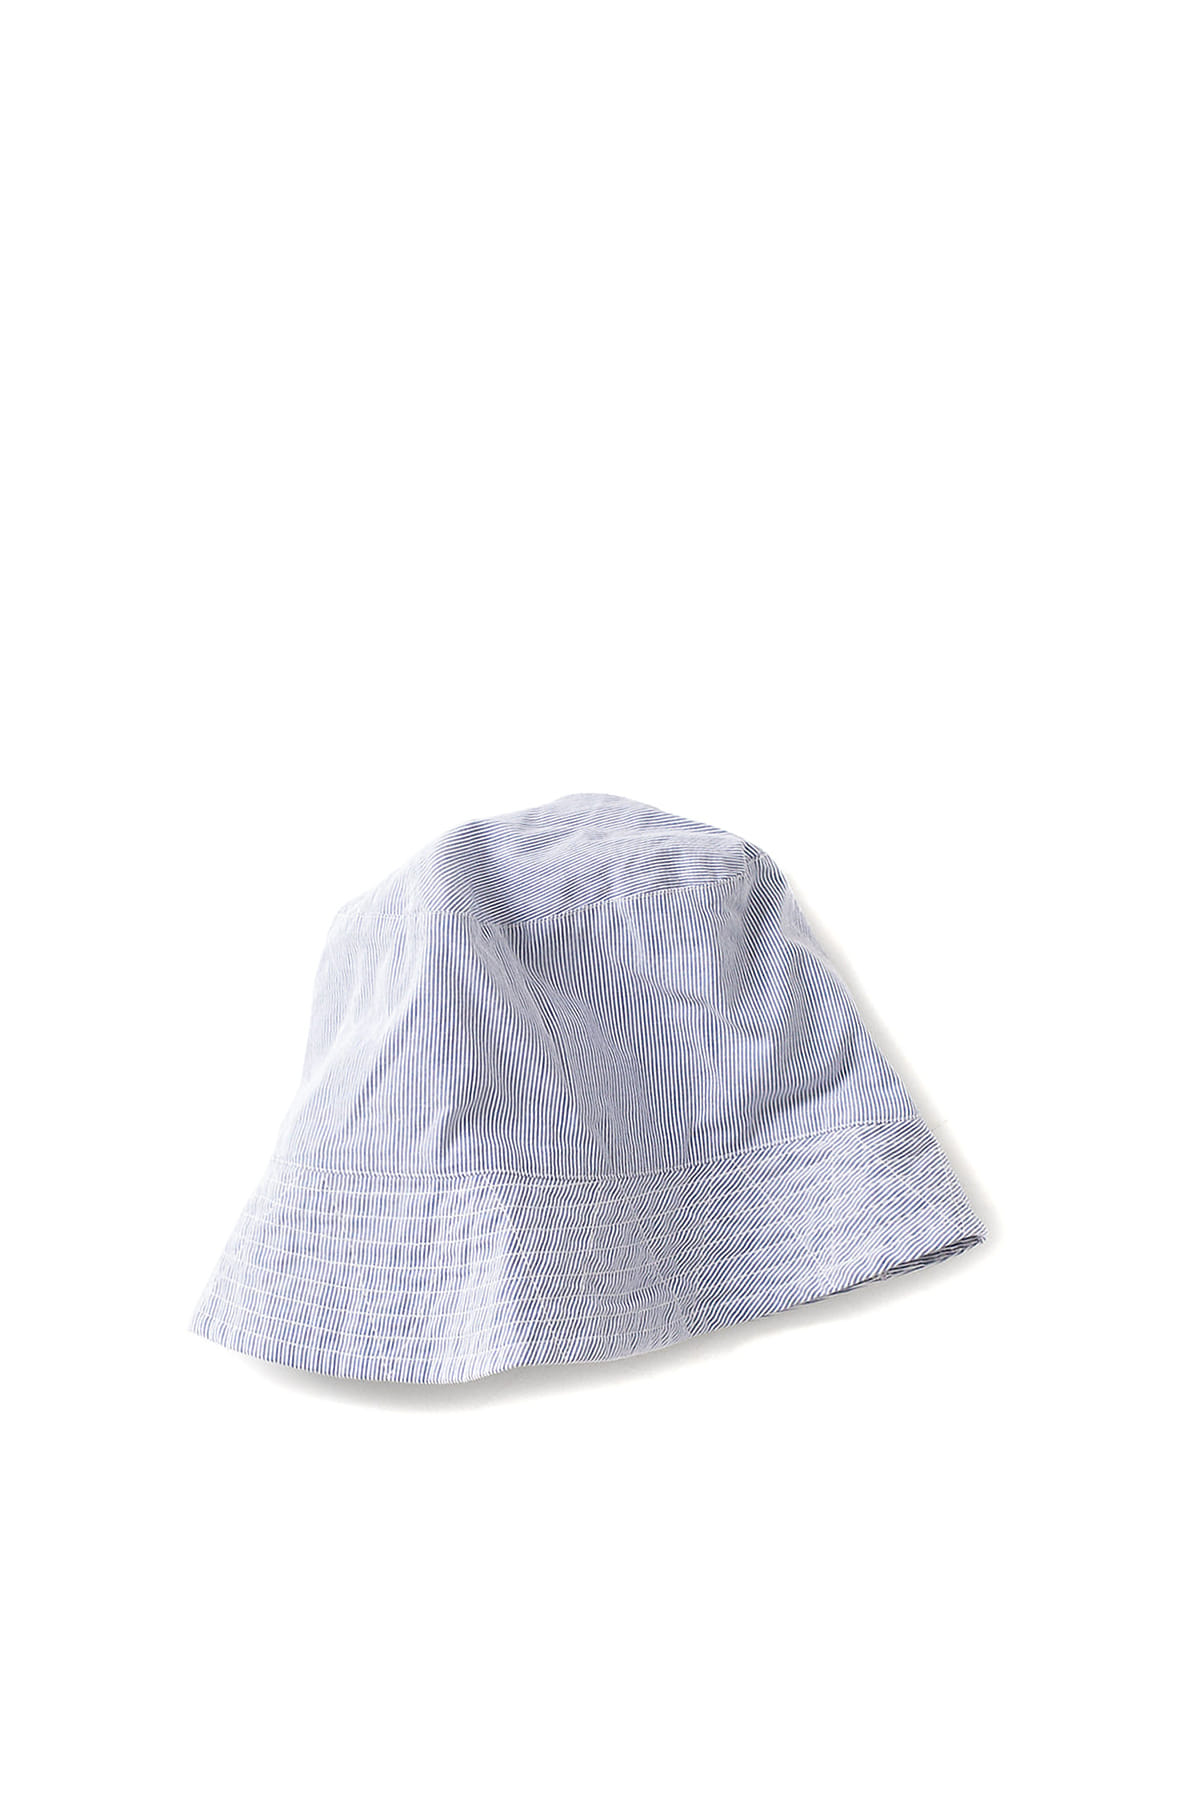 Engineered Garments : Bucket Hat (Lt. Blue Cotton Cordlane)